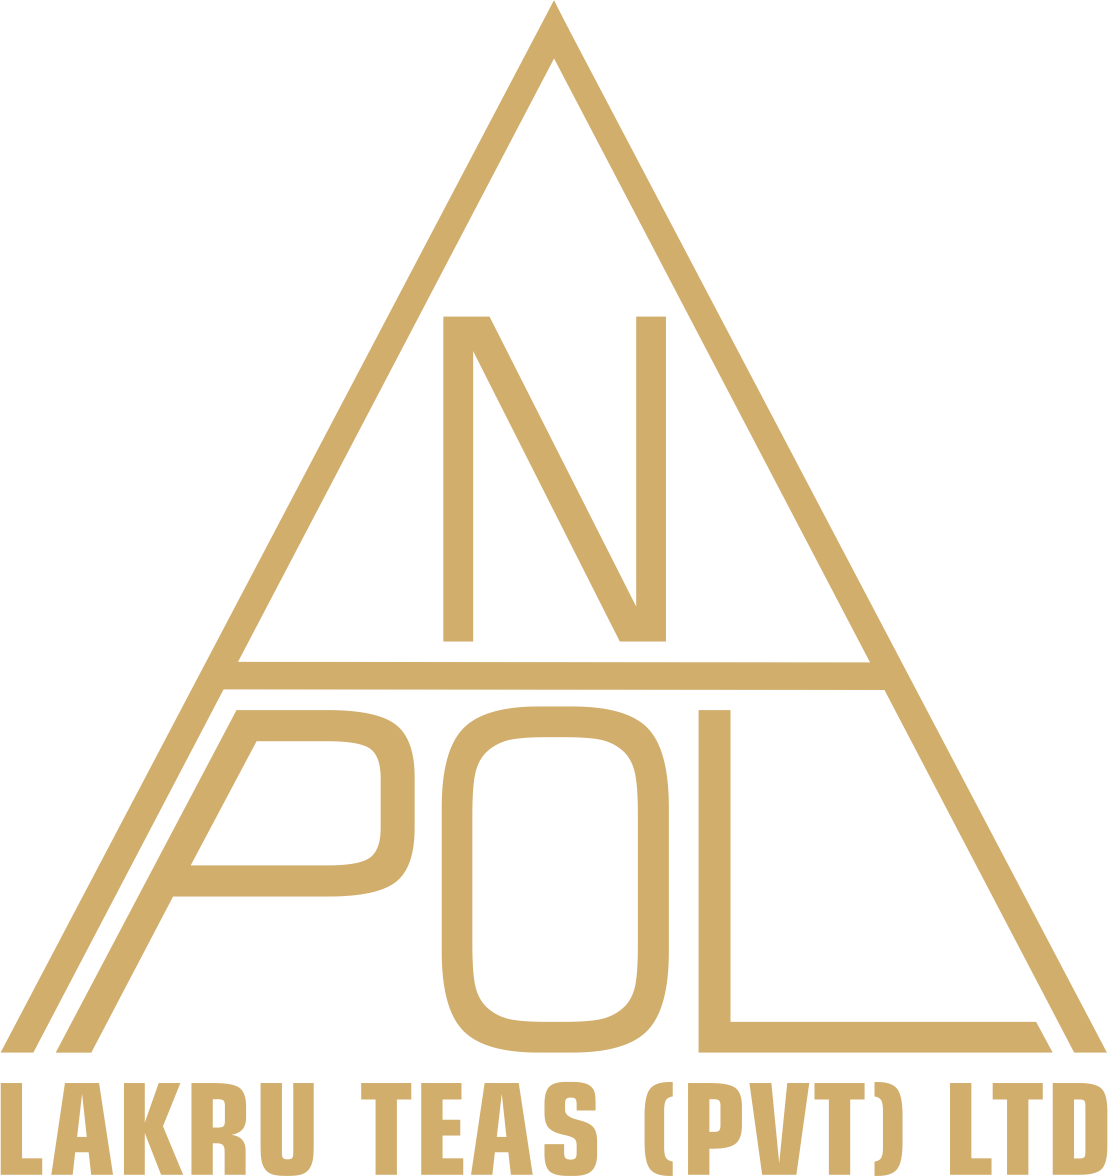 Ceylon Tea Exporter | Lakru Teas (Pvt) Ltd